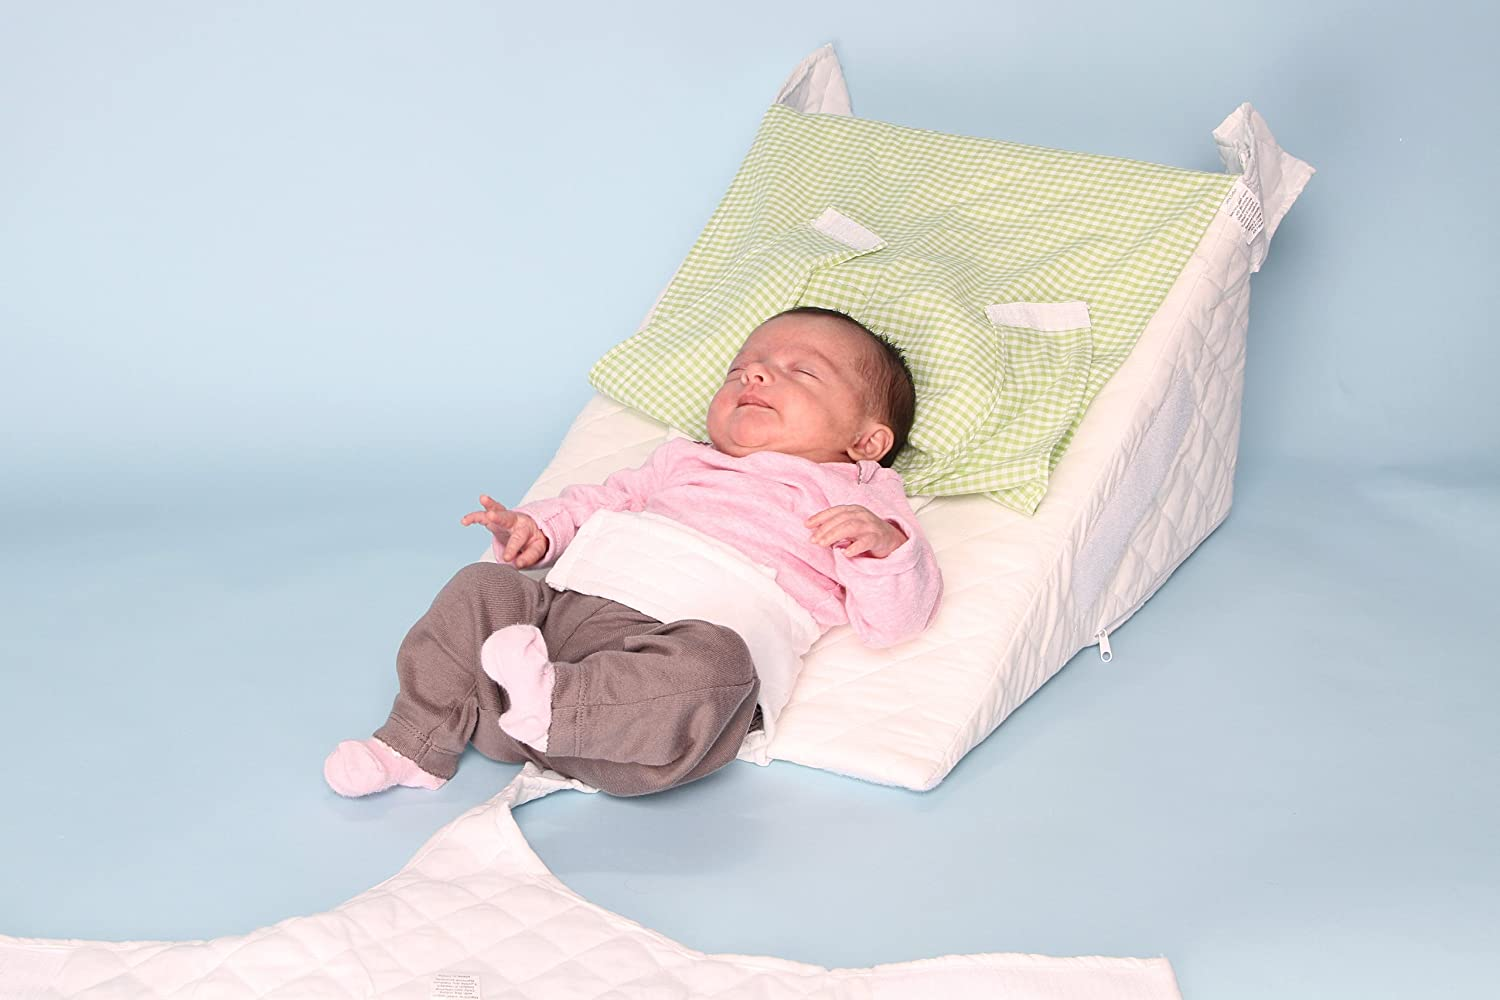 Baby bed for reflux - Amazon Com Baby Ar Pillow Acid Reflux Pillow Wedge For Babies And Infants Safely Elevate To A 30 Degree Angle The Researched Proven Best